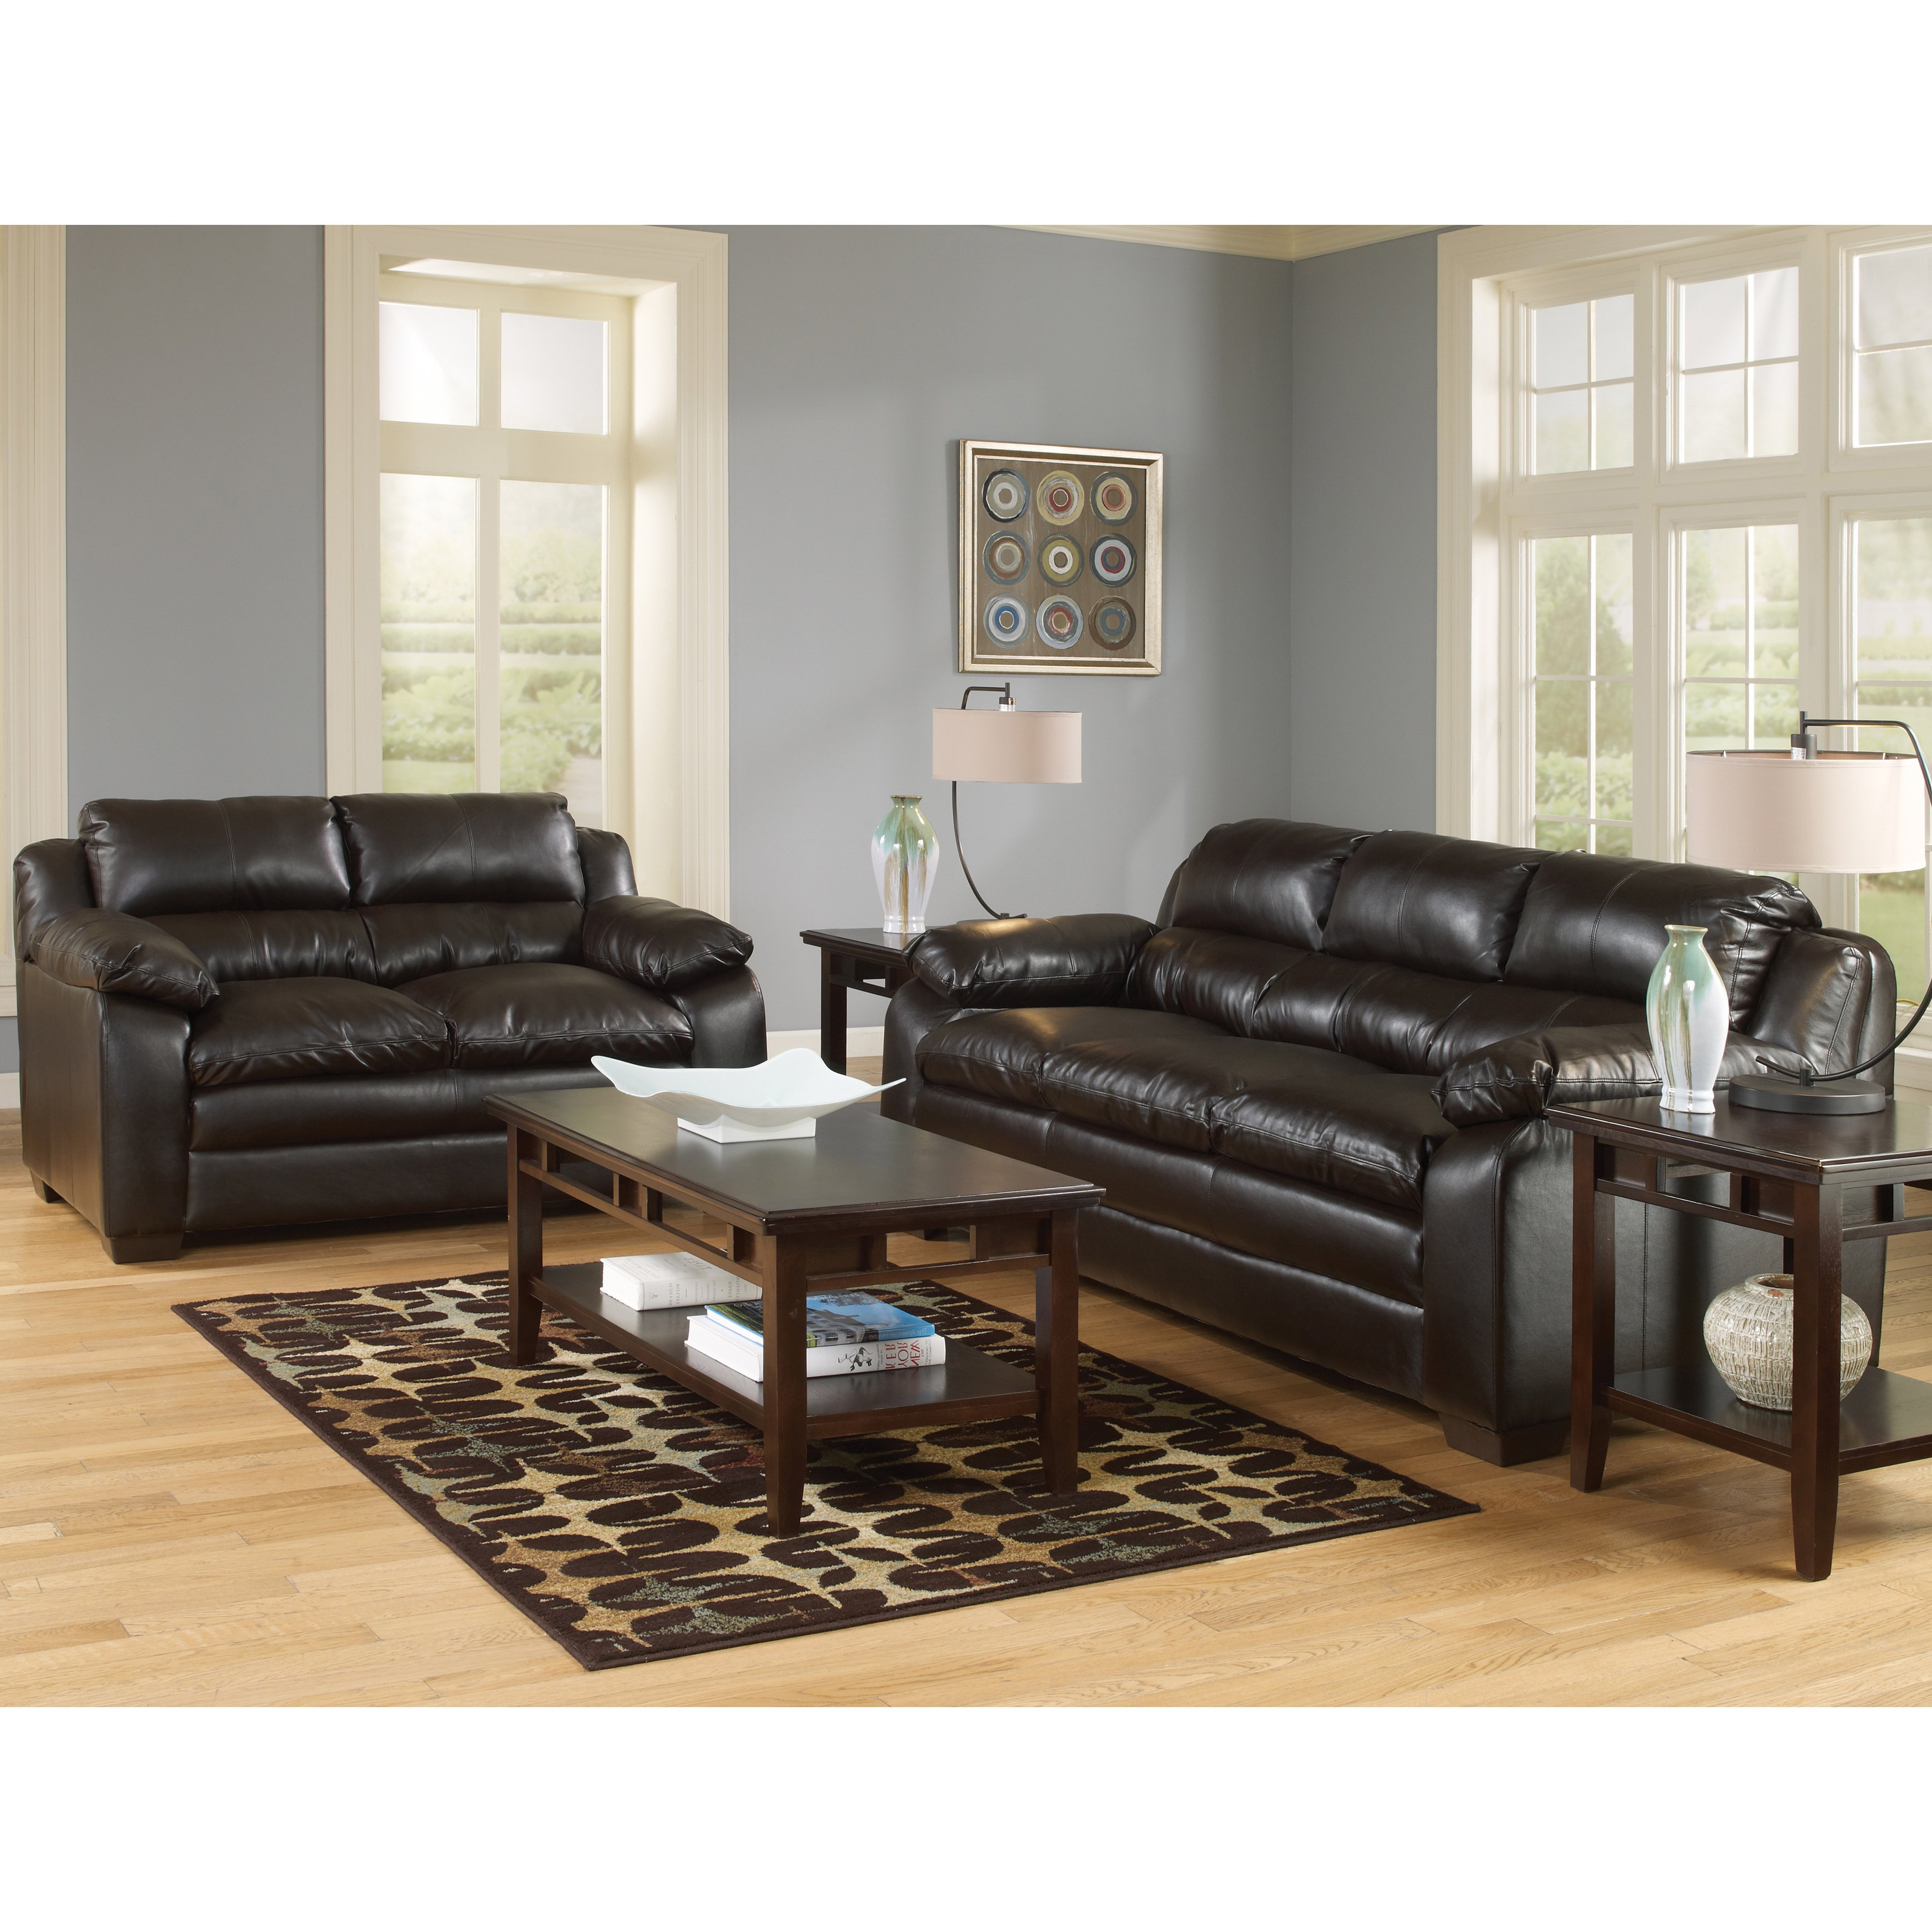 Shop Art Van Maddox Espresso Sofa And Loveseat Set – Free Shipping Throughout Well Known Maddox Oversized Sofa Chairs (View 11 of 20)